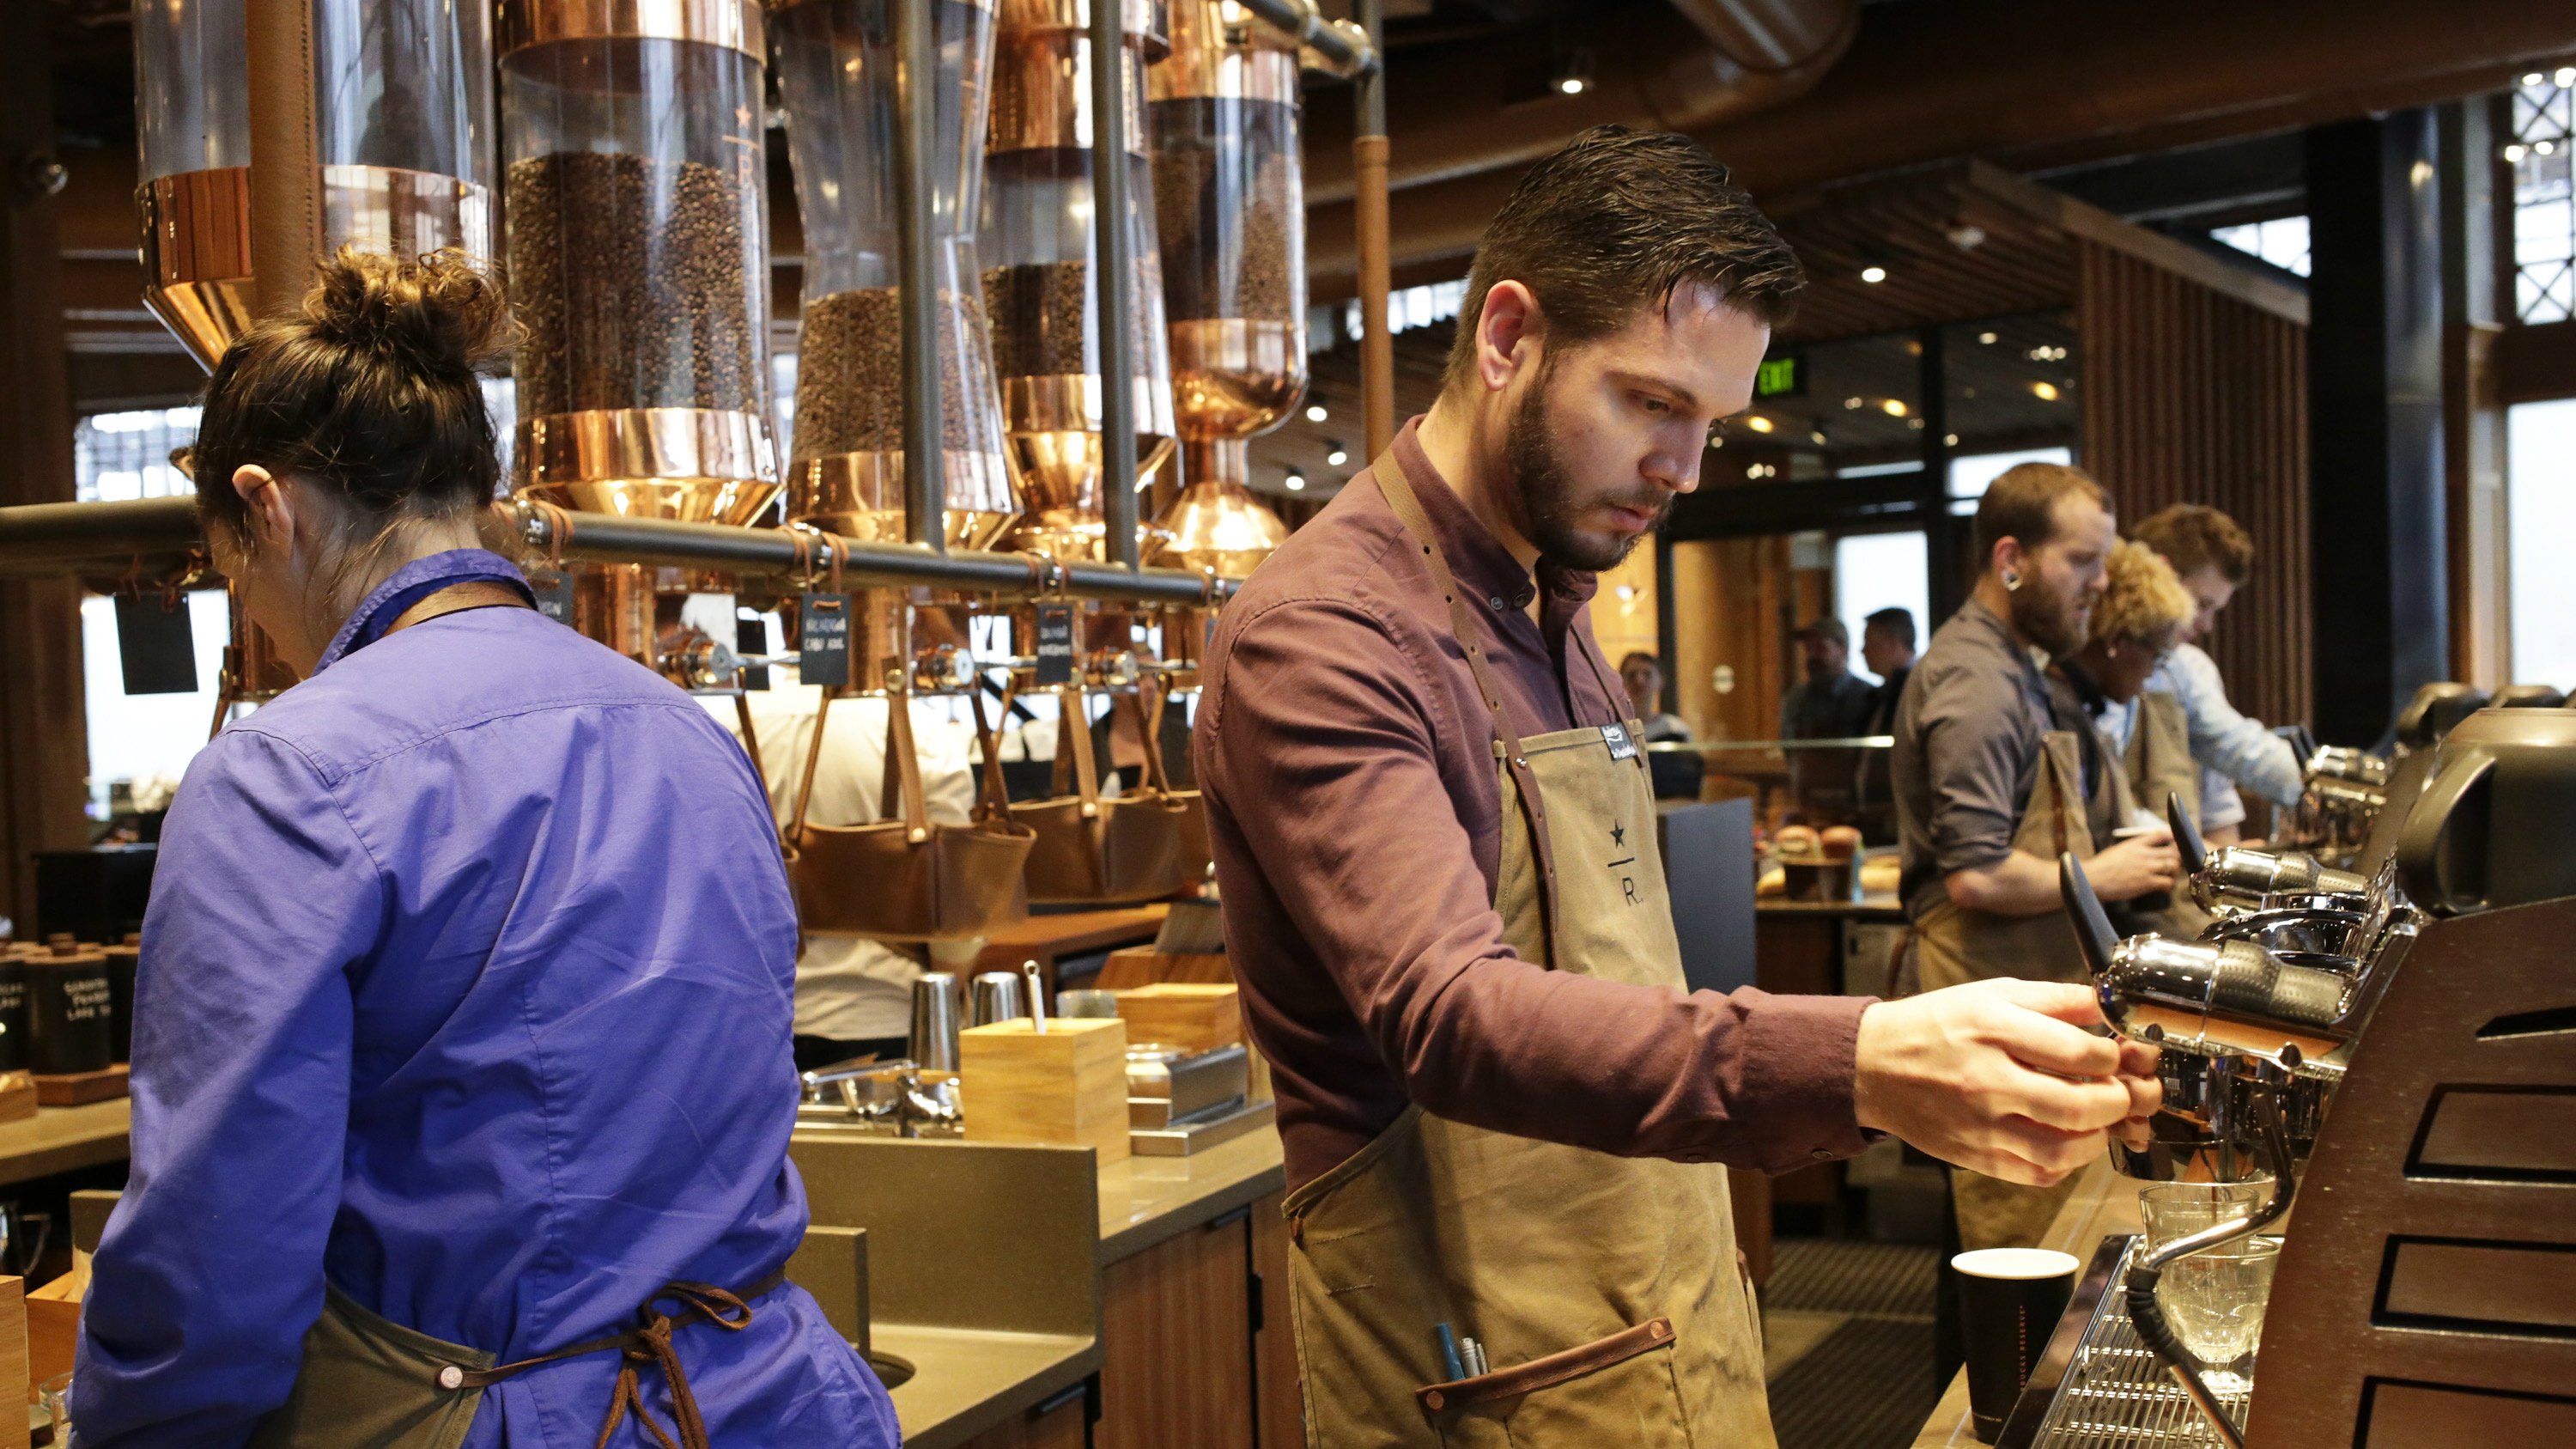 Starbucks plans to open a new roastery location in New York in 2016.